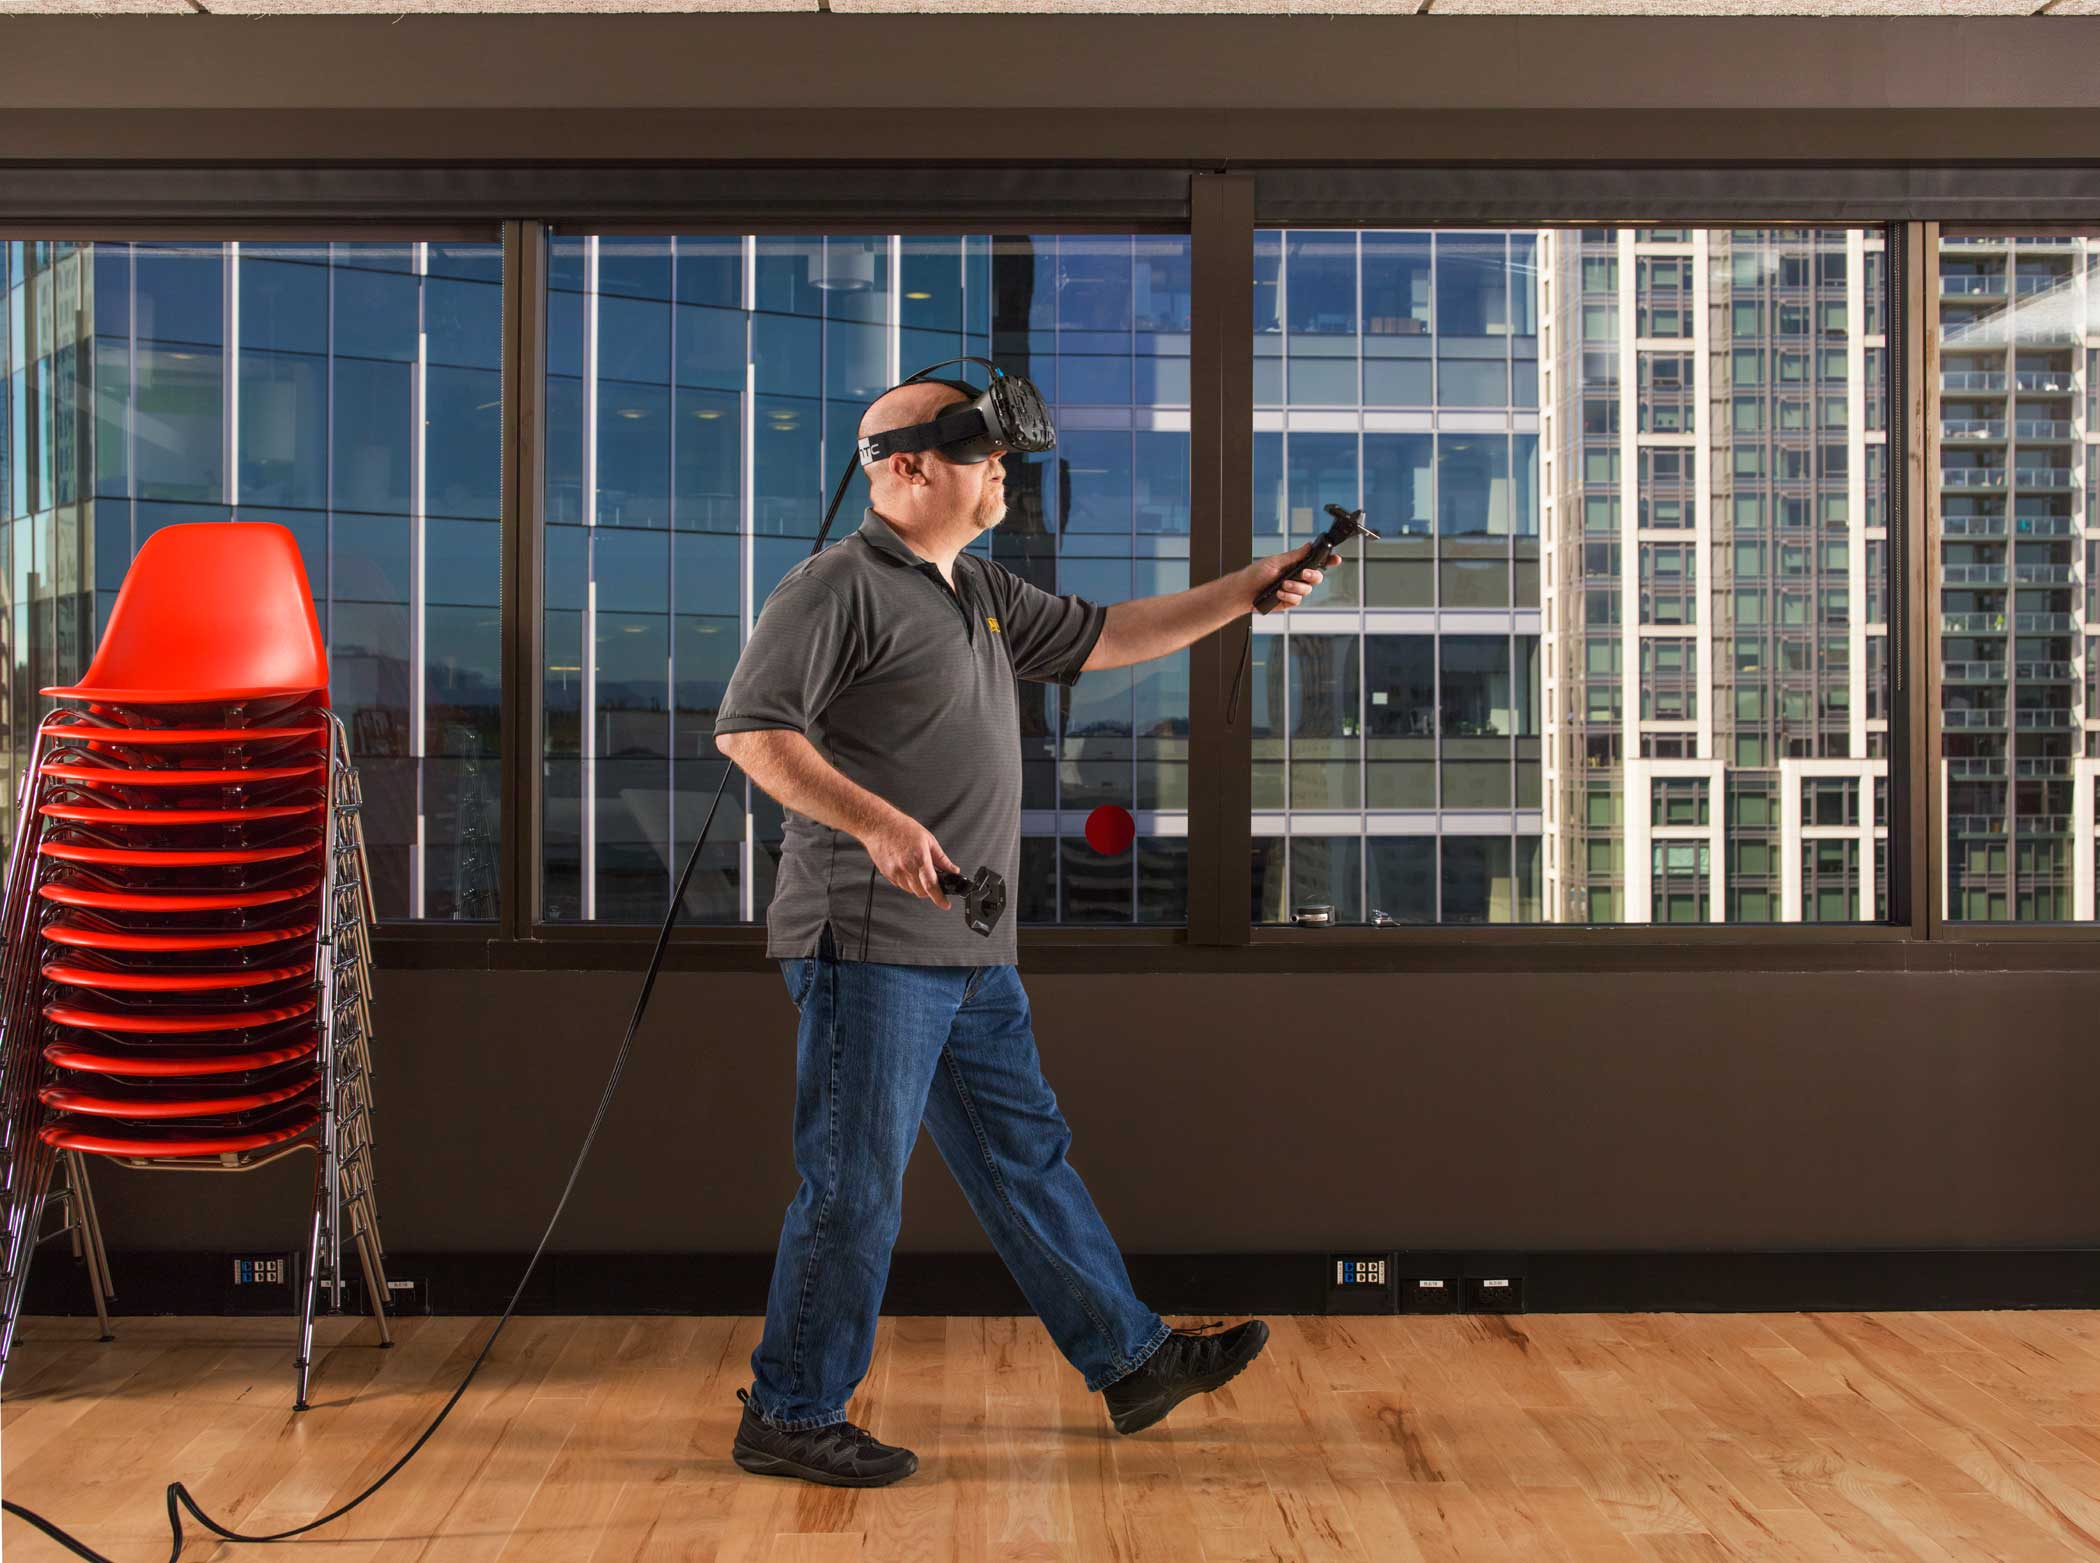 Ken Birdwell, an engineer from Valve, demonstrates the Vive virtual reality headset at the Valve headquarters in Seattle, Wash. on June 25, 2015.